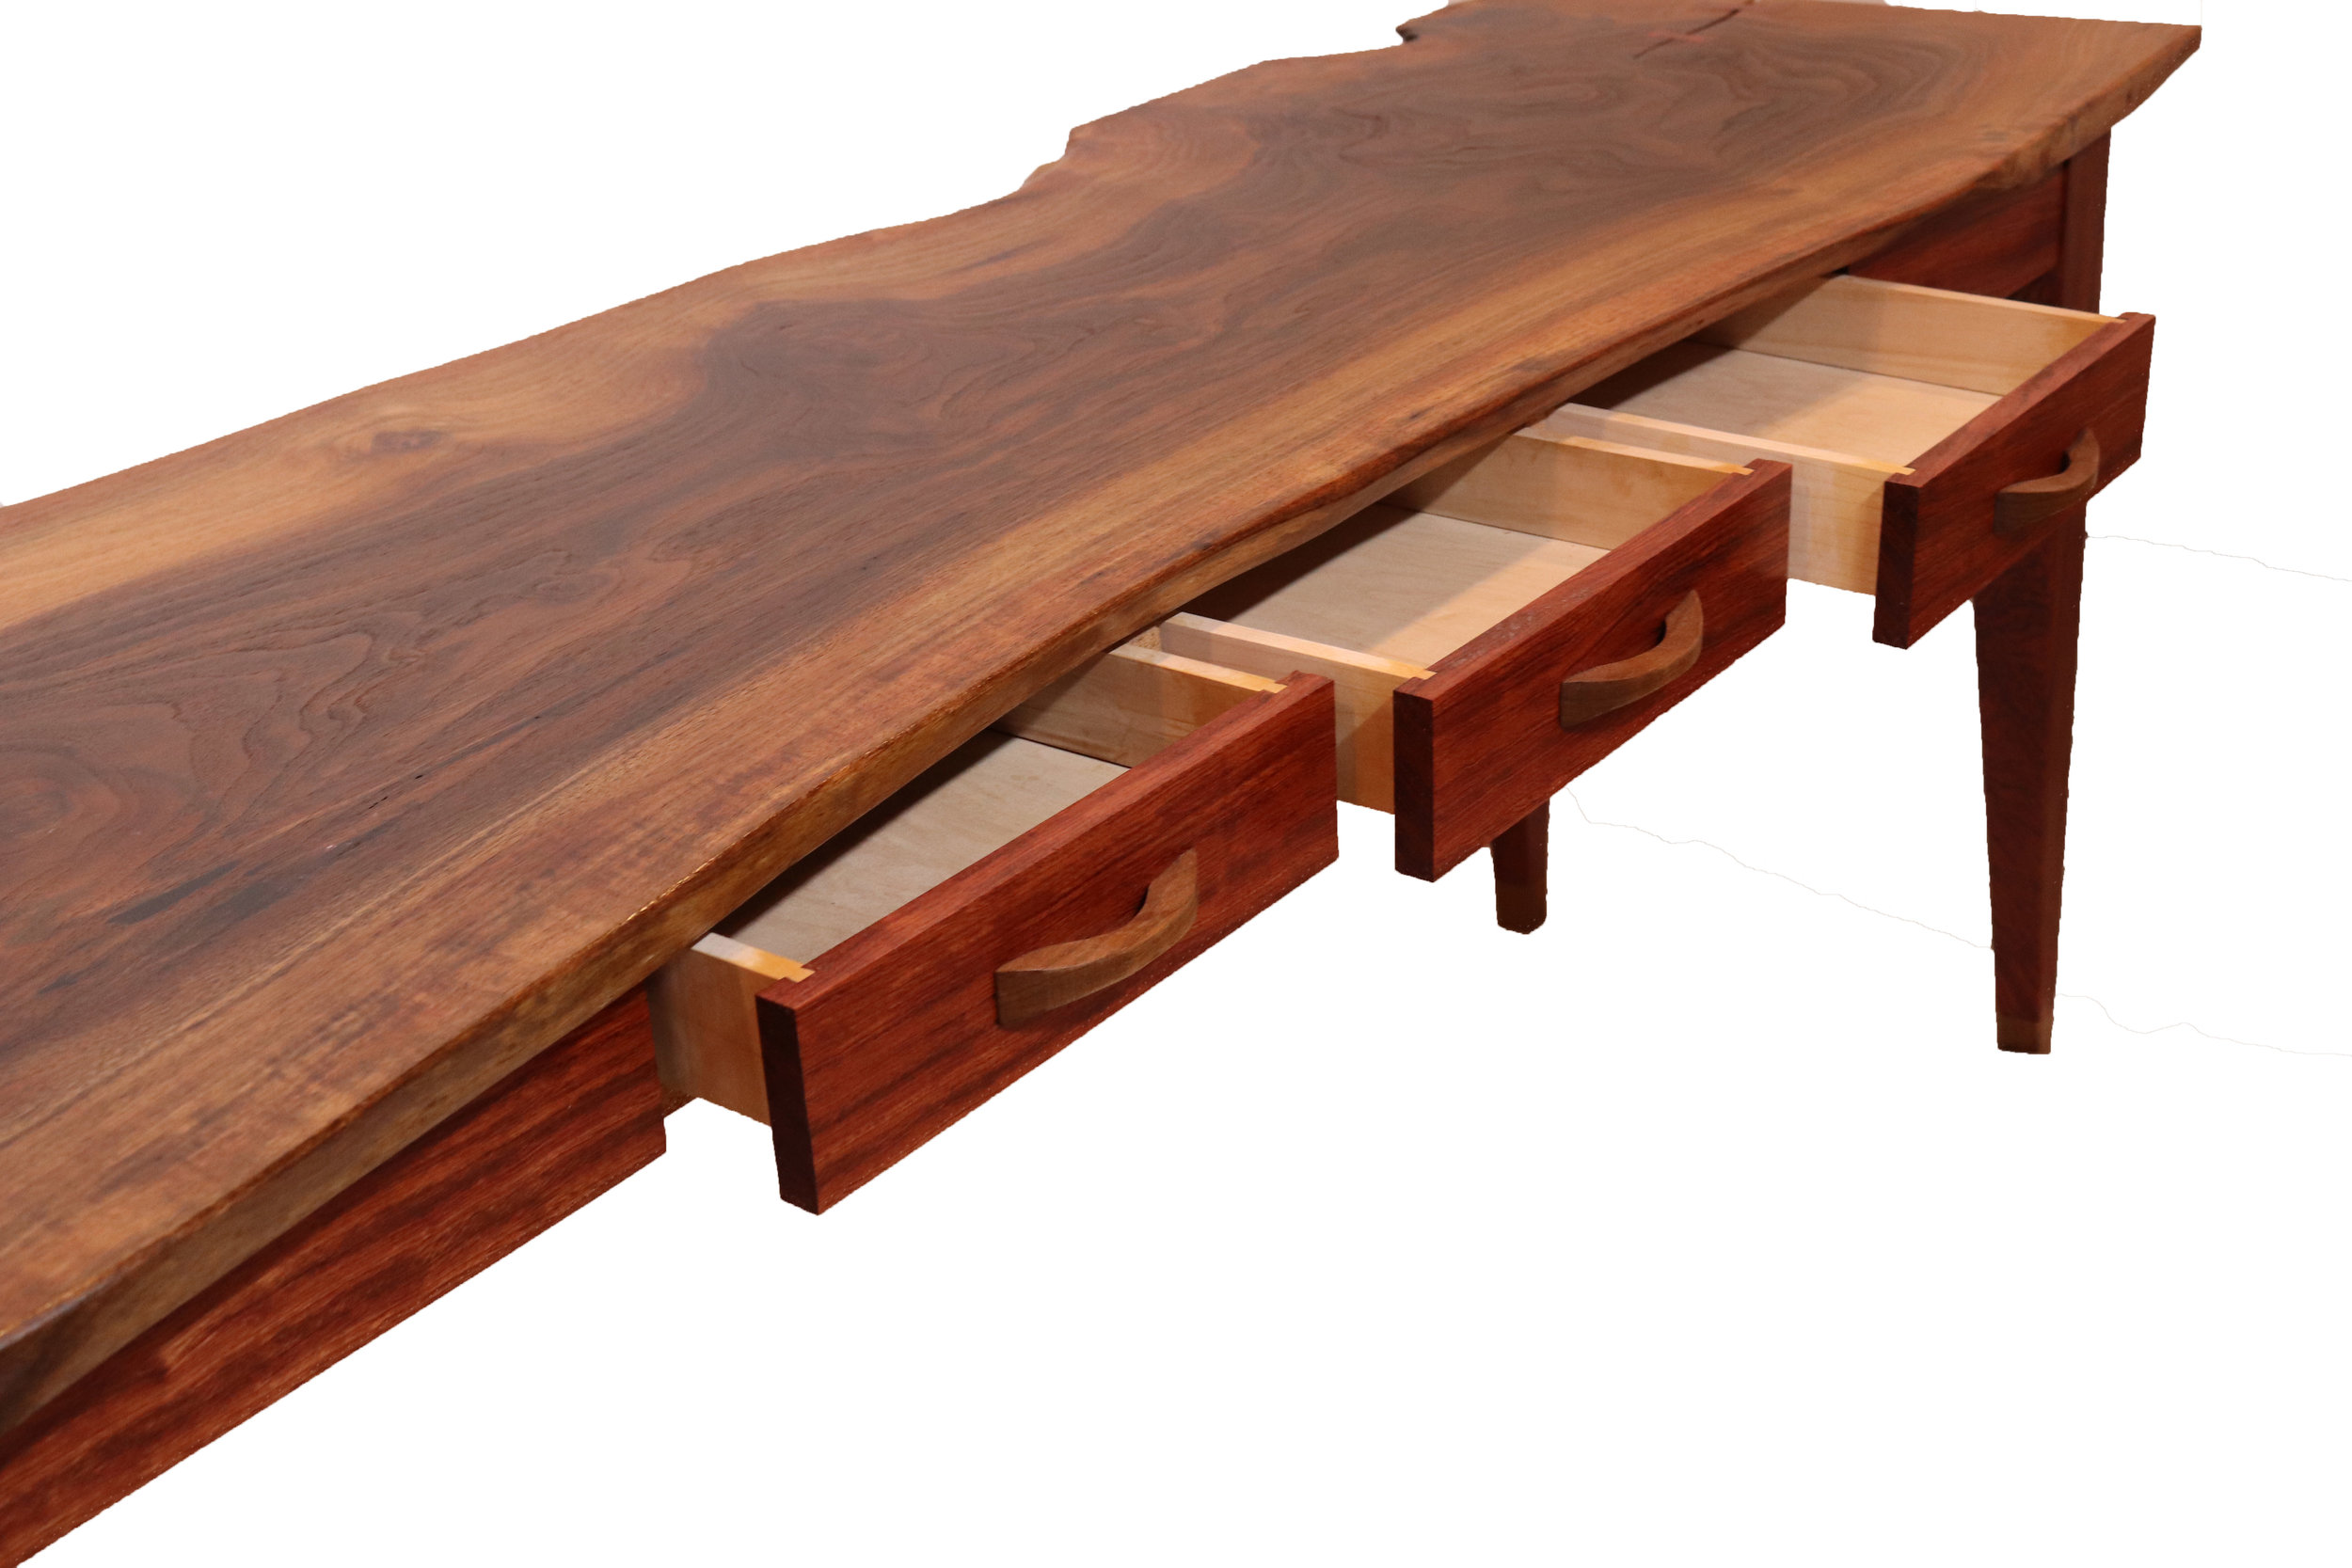 Claro walnut and bubinga desk